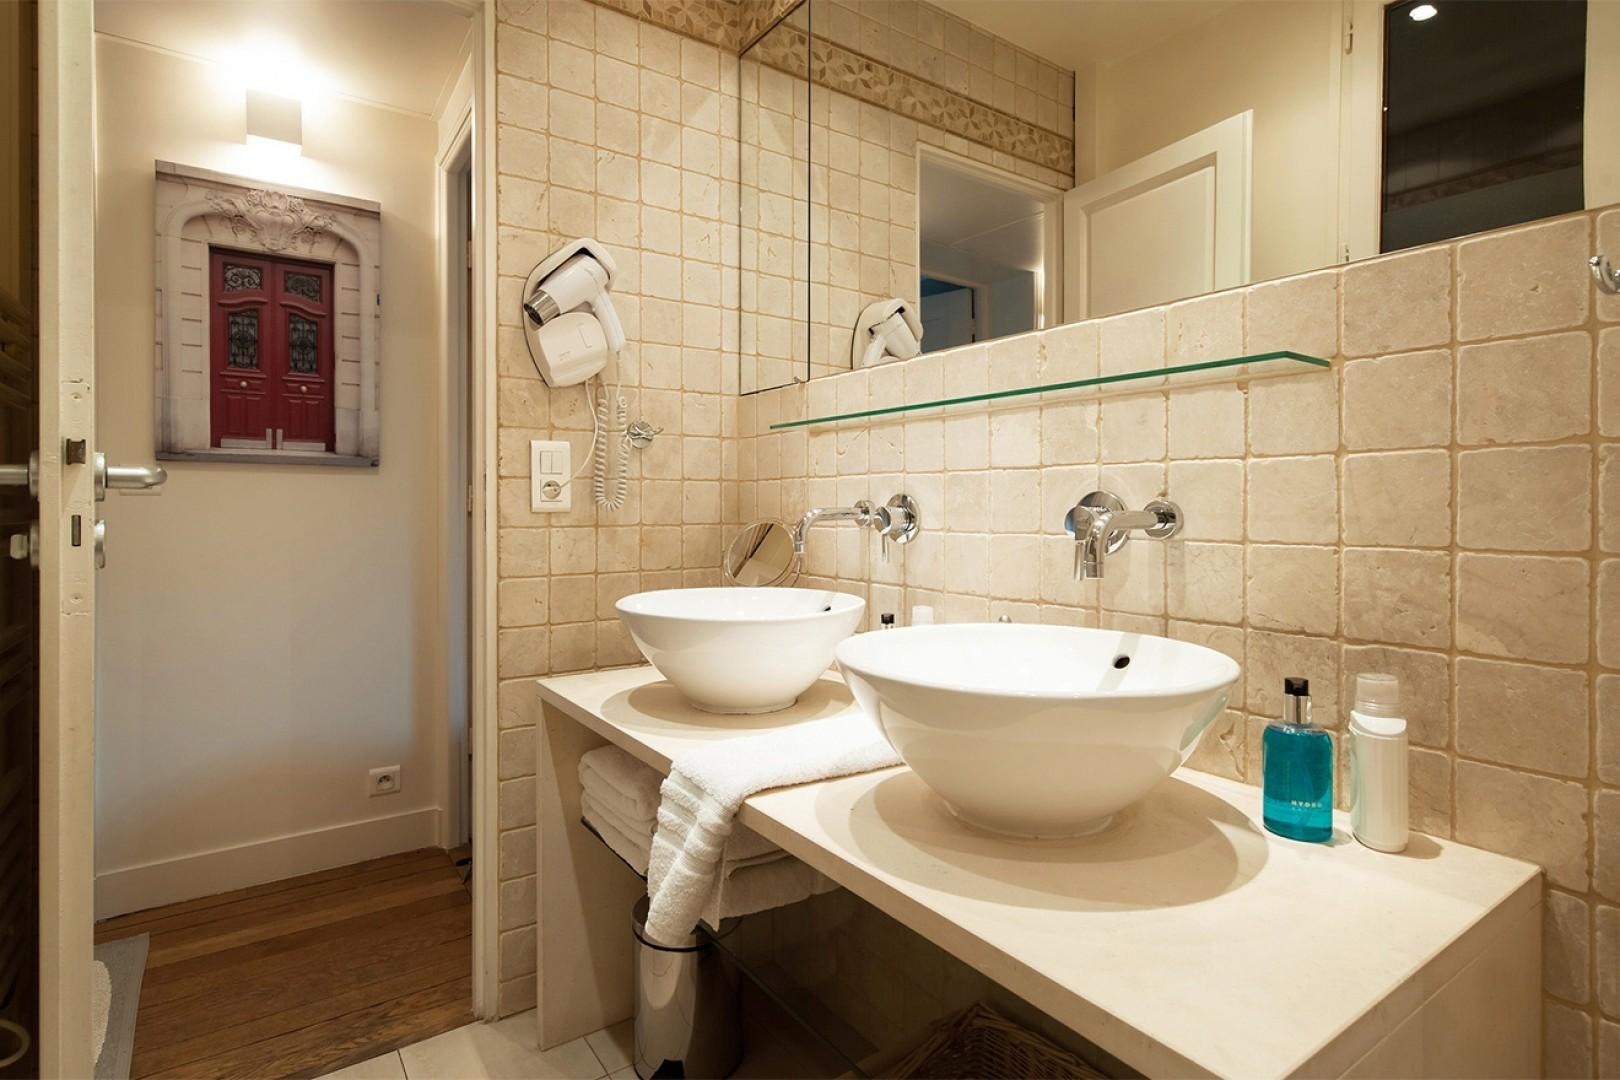 You will love the modern finishes in the bathroom.